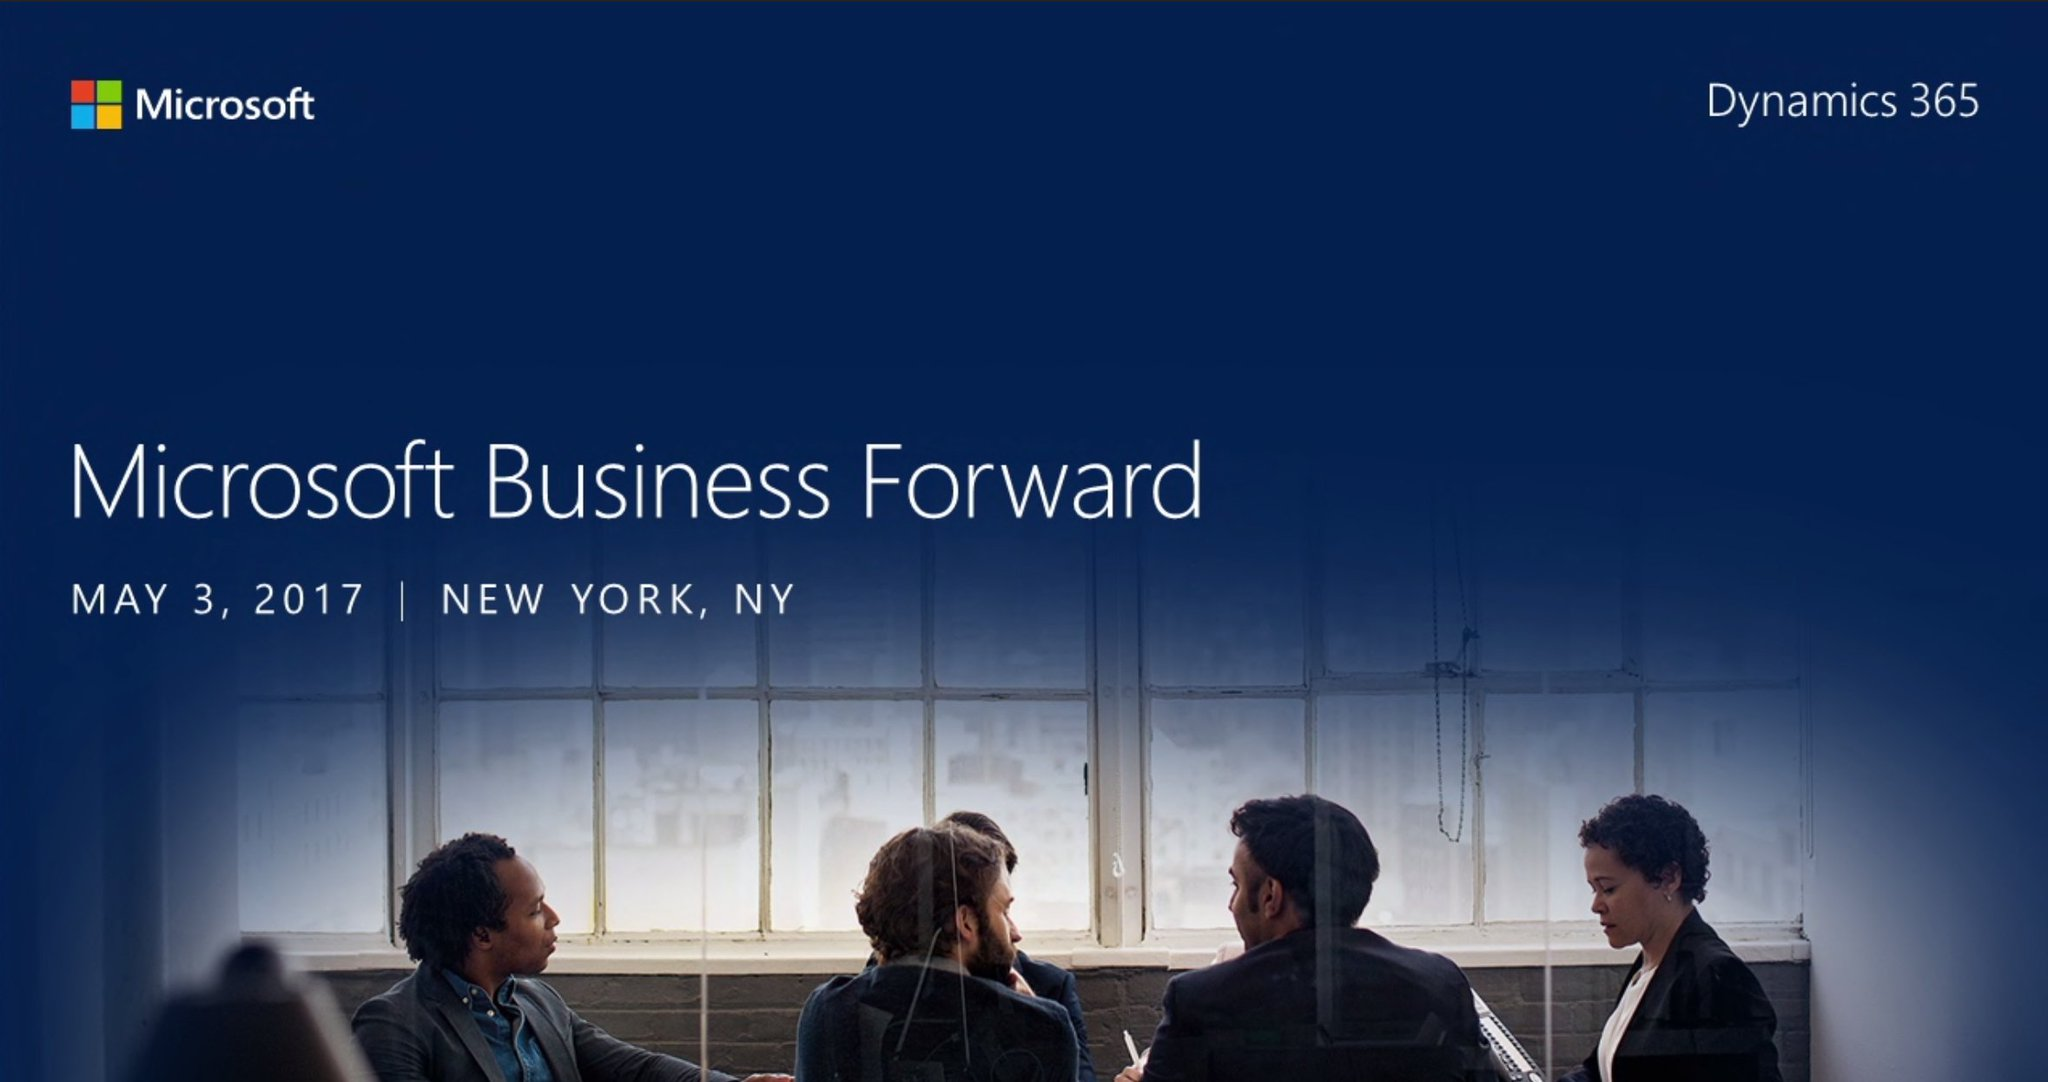 @MSFTDynamics365 Ready to go from Seattle :-) #MSBusinessFwd https://t.co/ncZH27ihQ1